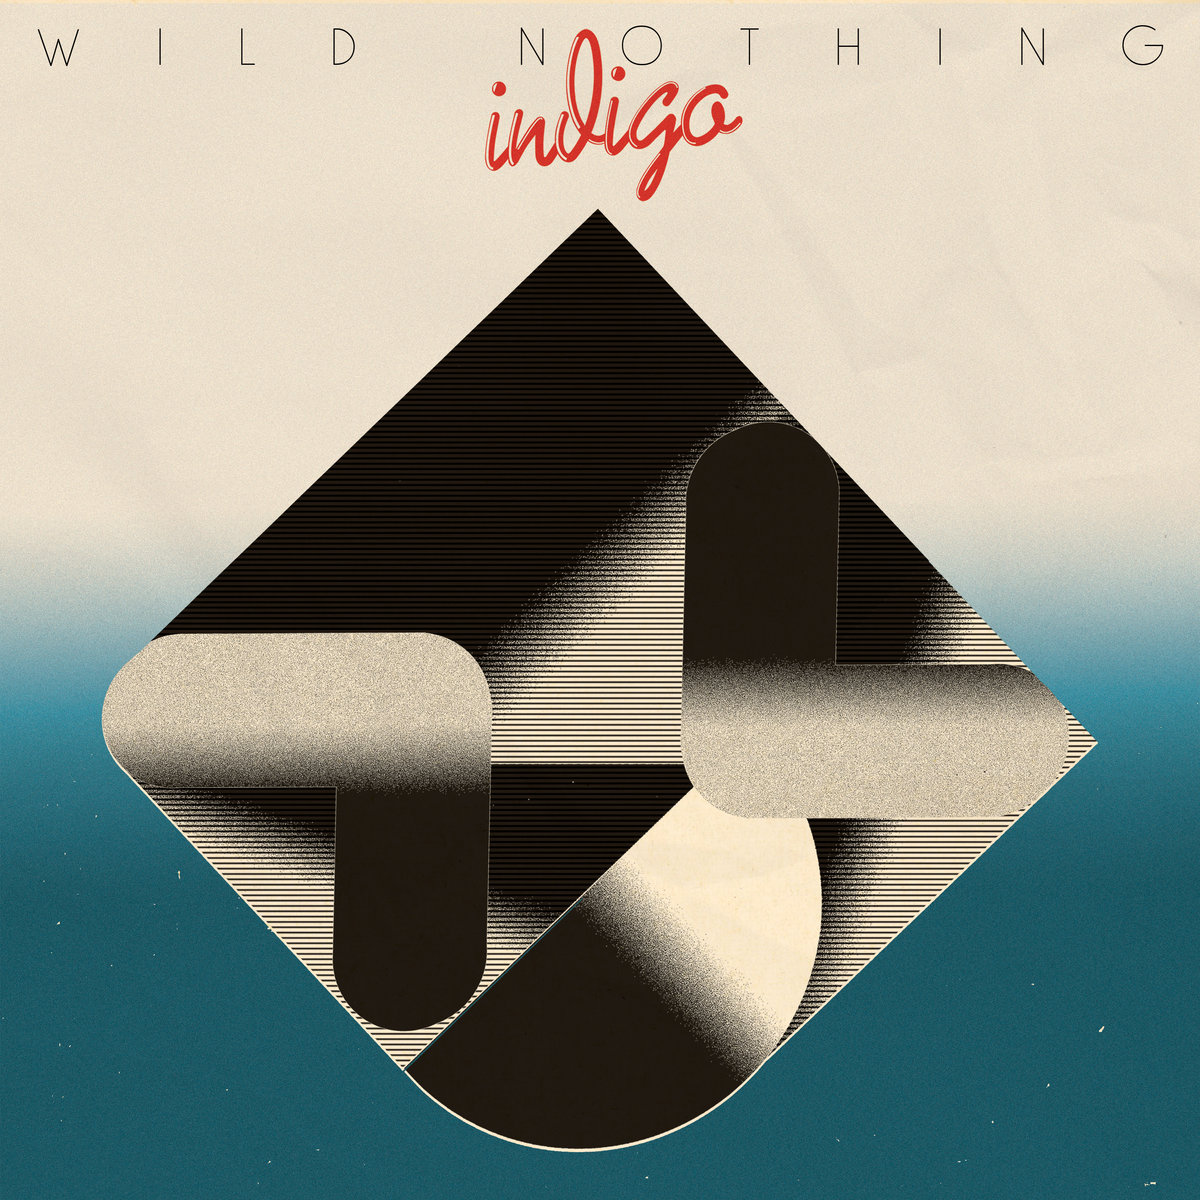 'Indigo' by Wild Nothing, album review by Leslie Chu for Northern Transmissions